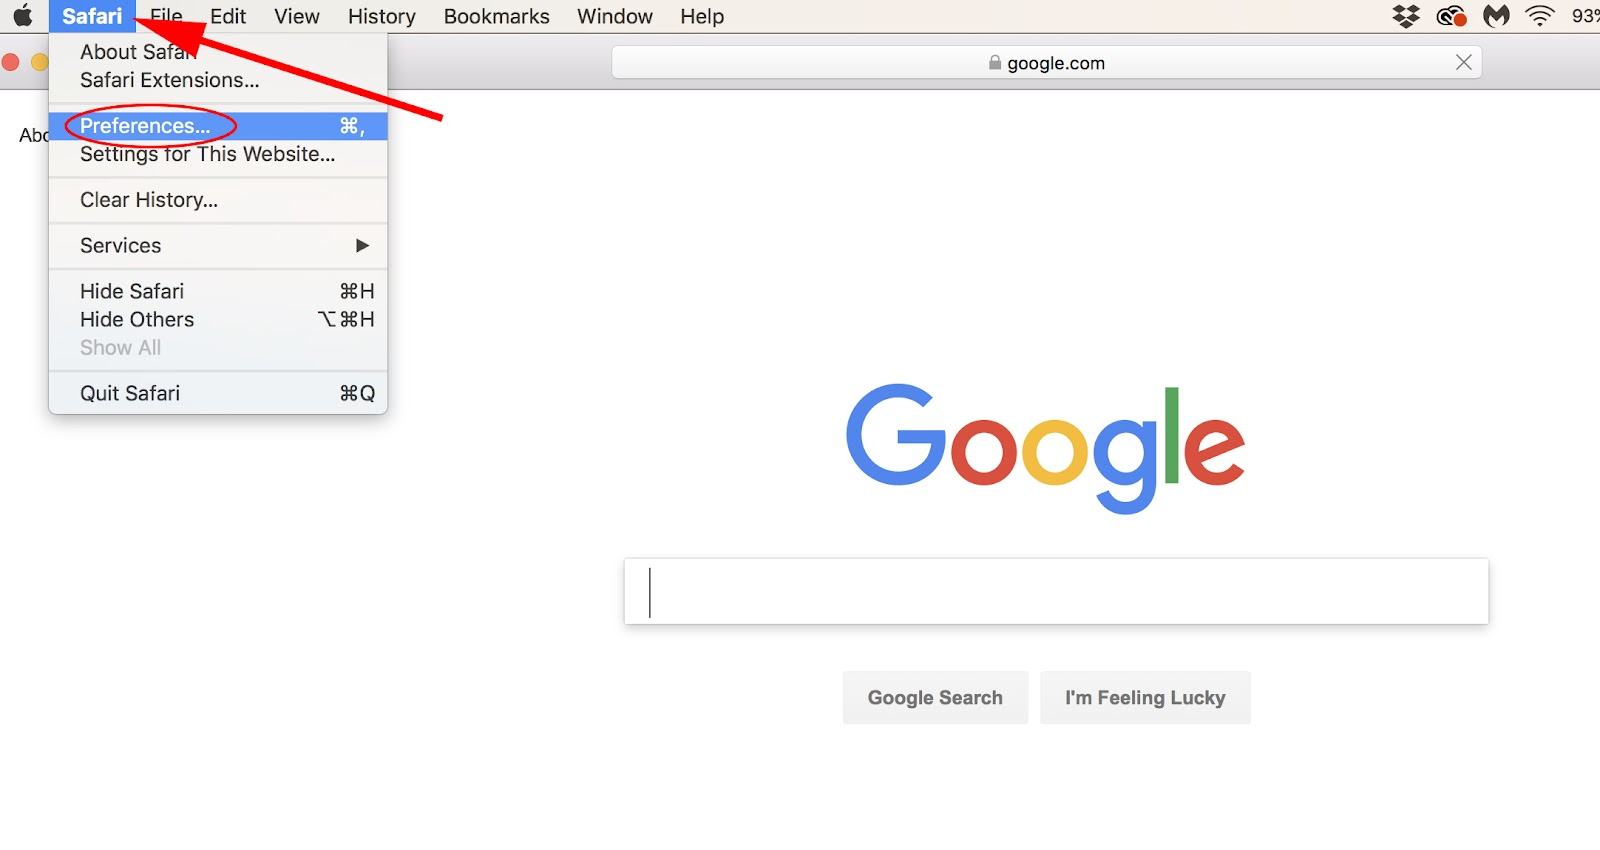 Go To Homepage >> The 1 Minute Guide To Making Google Your Homepage